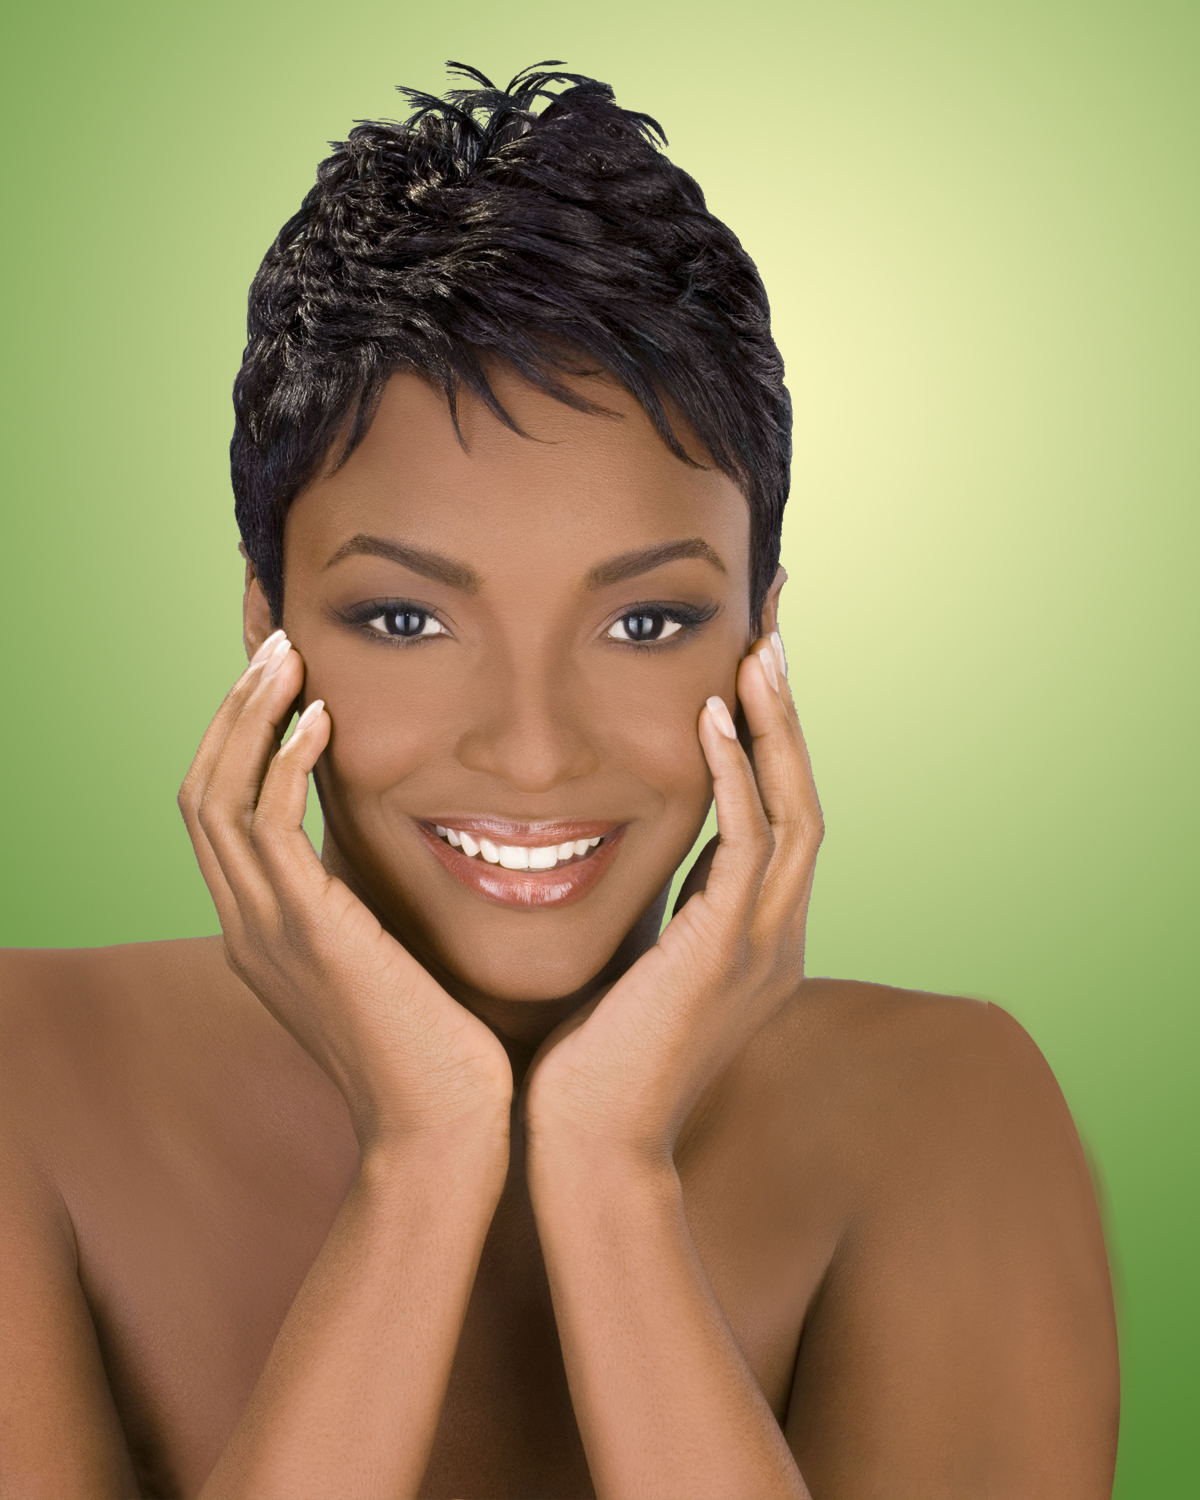 Black Women Short Hair Cuts – Hairstyle For Women & Man Intended For Black Woman Short Haircuts (View 13 of 25)